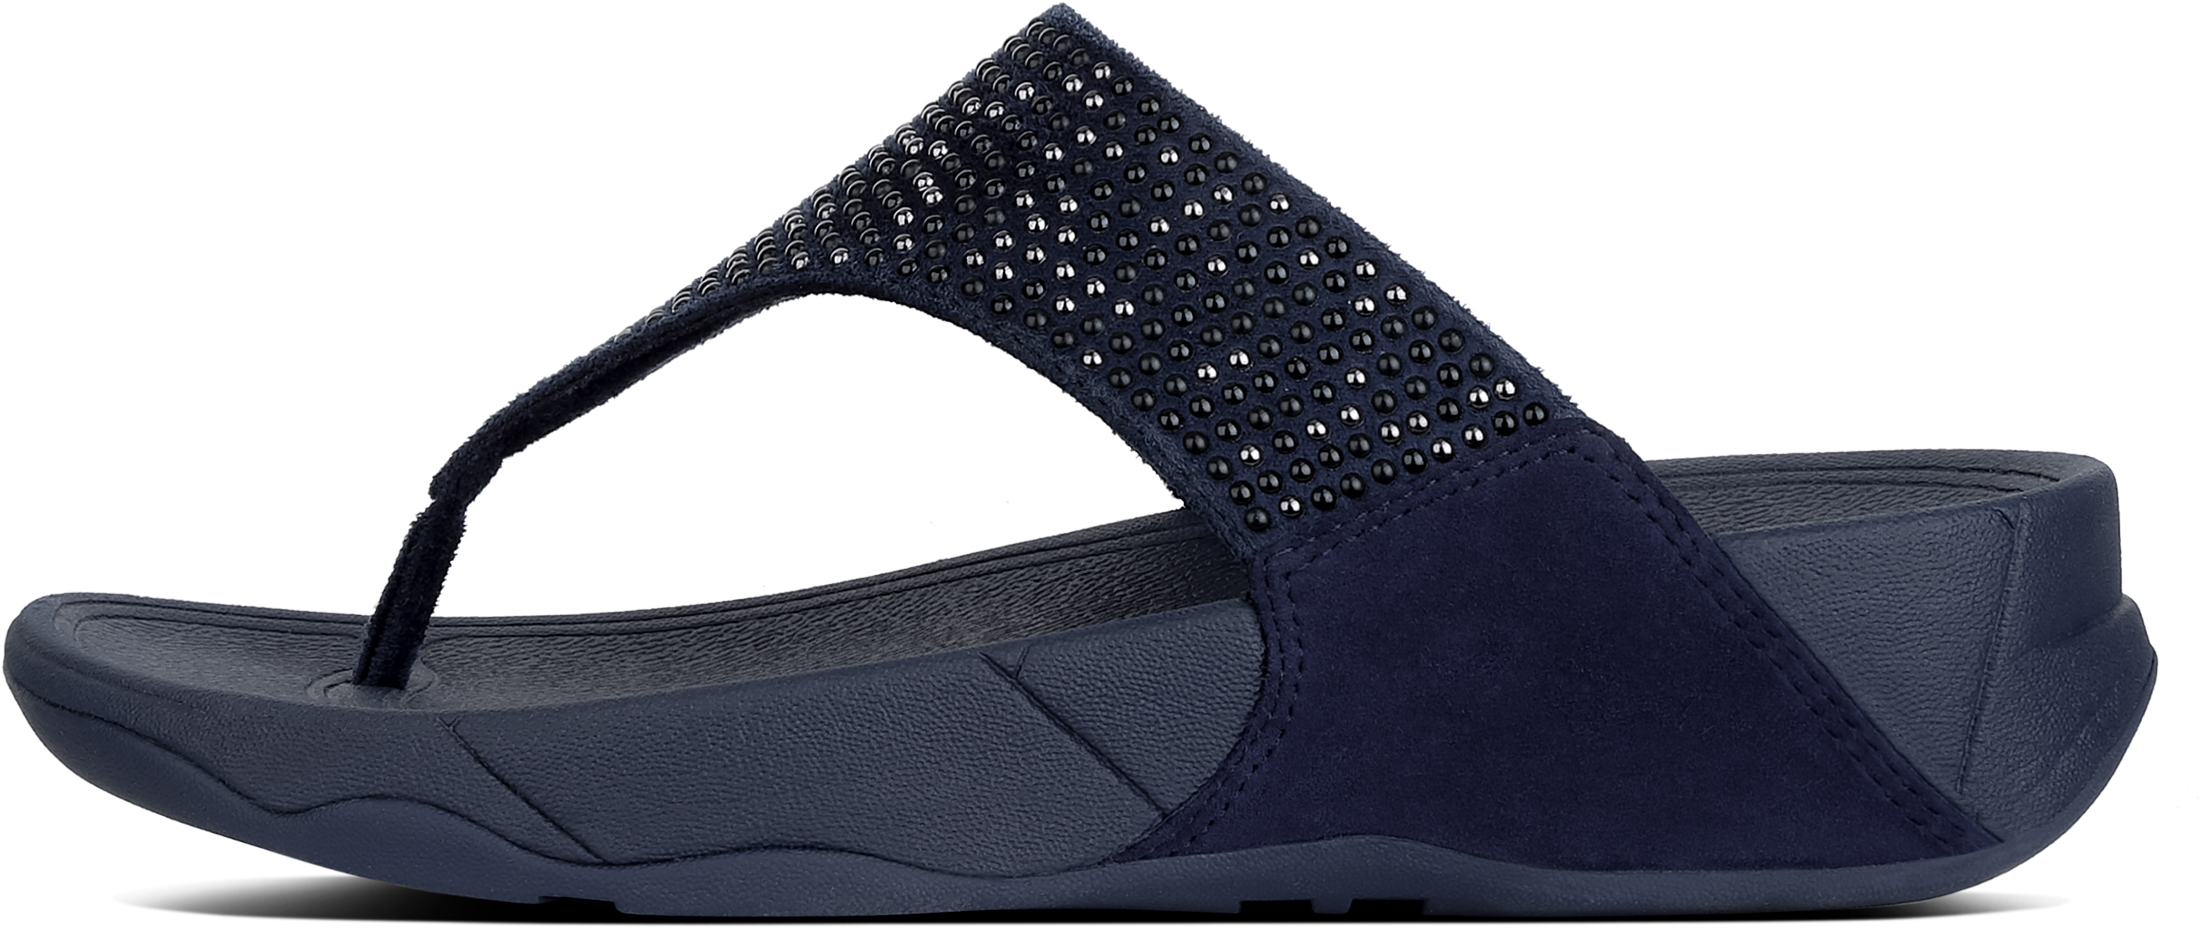 2deeff047a4 FitFlop Lulu Pop Stud Toe Post - Midnight Navy (textile) Womens Sandals 3  UK. About this product. Picture 1 of 4  Picture 2 of 4  Picture 3 of 4   Picture 4 ...